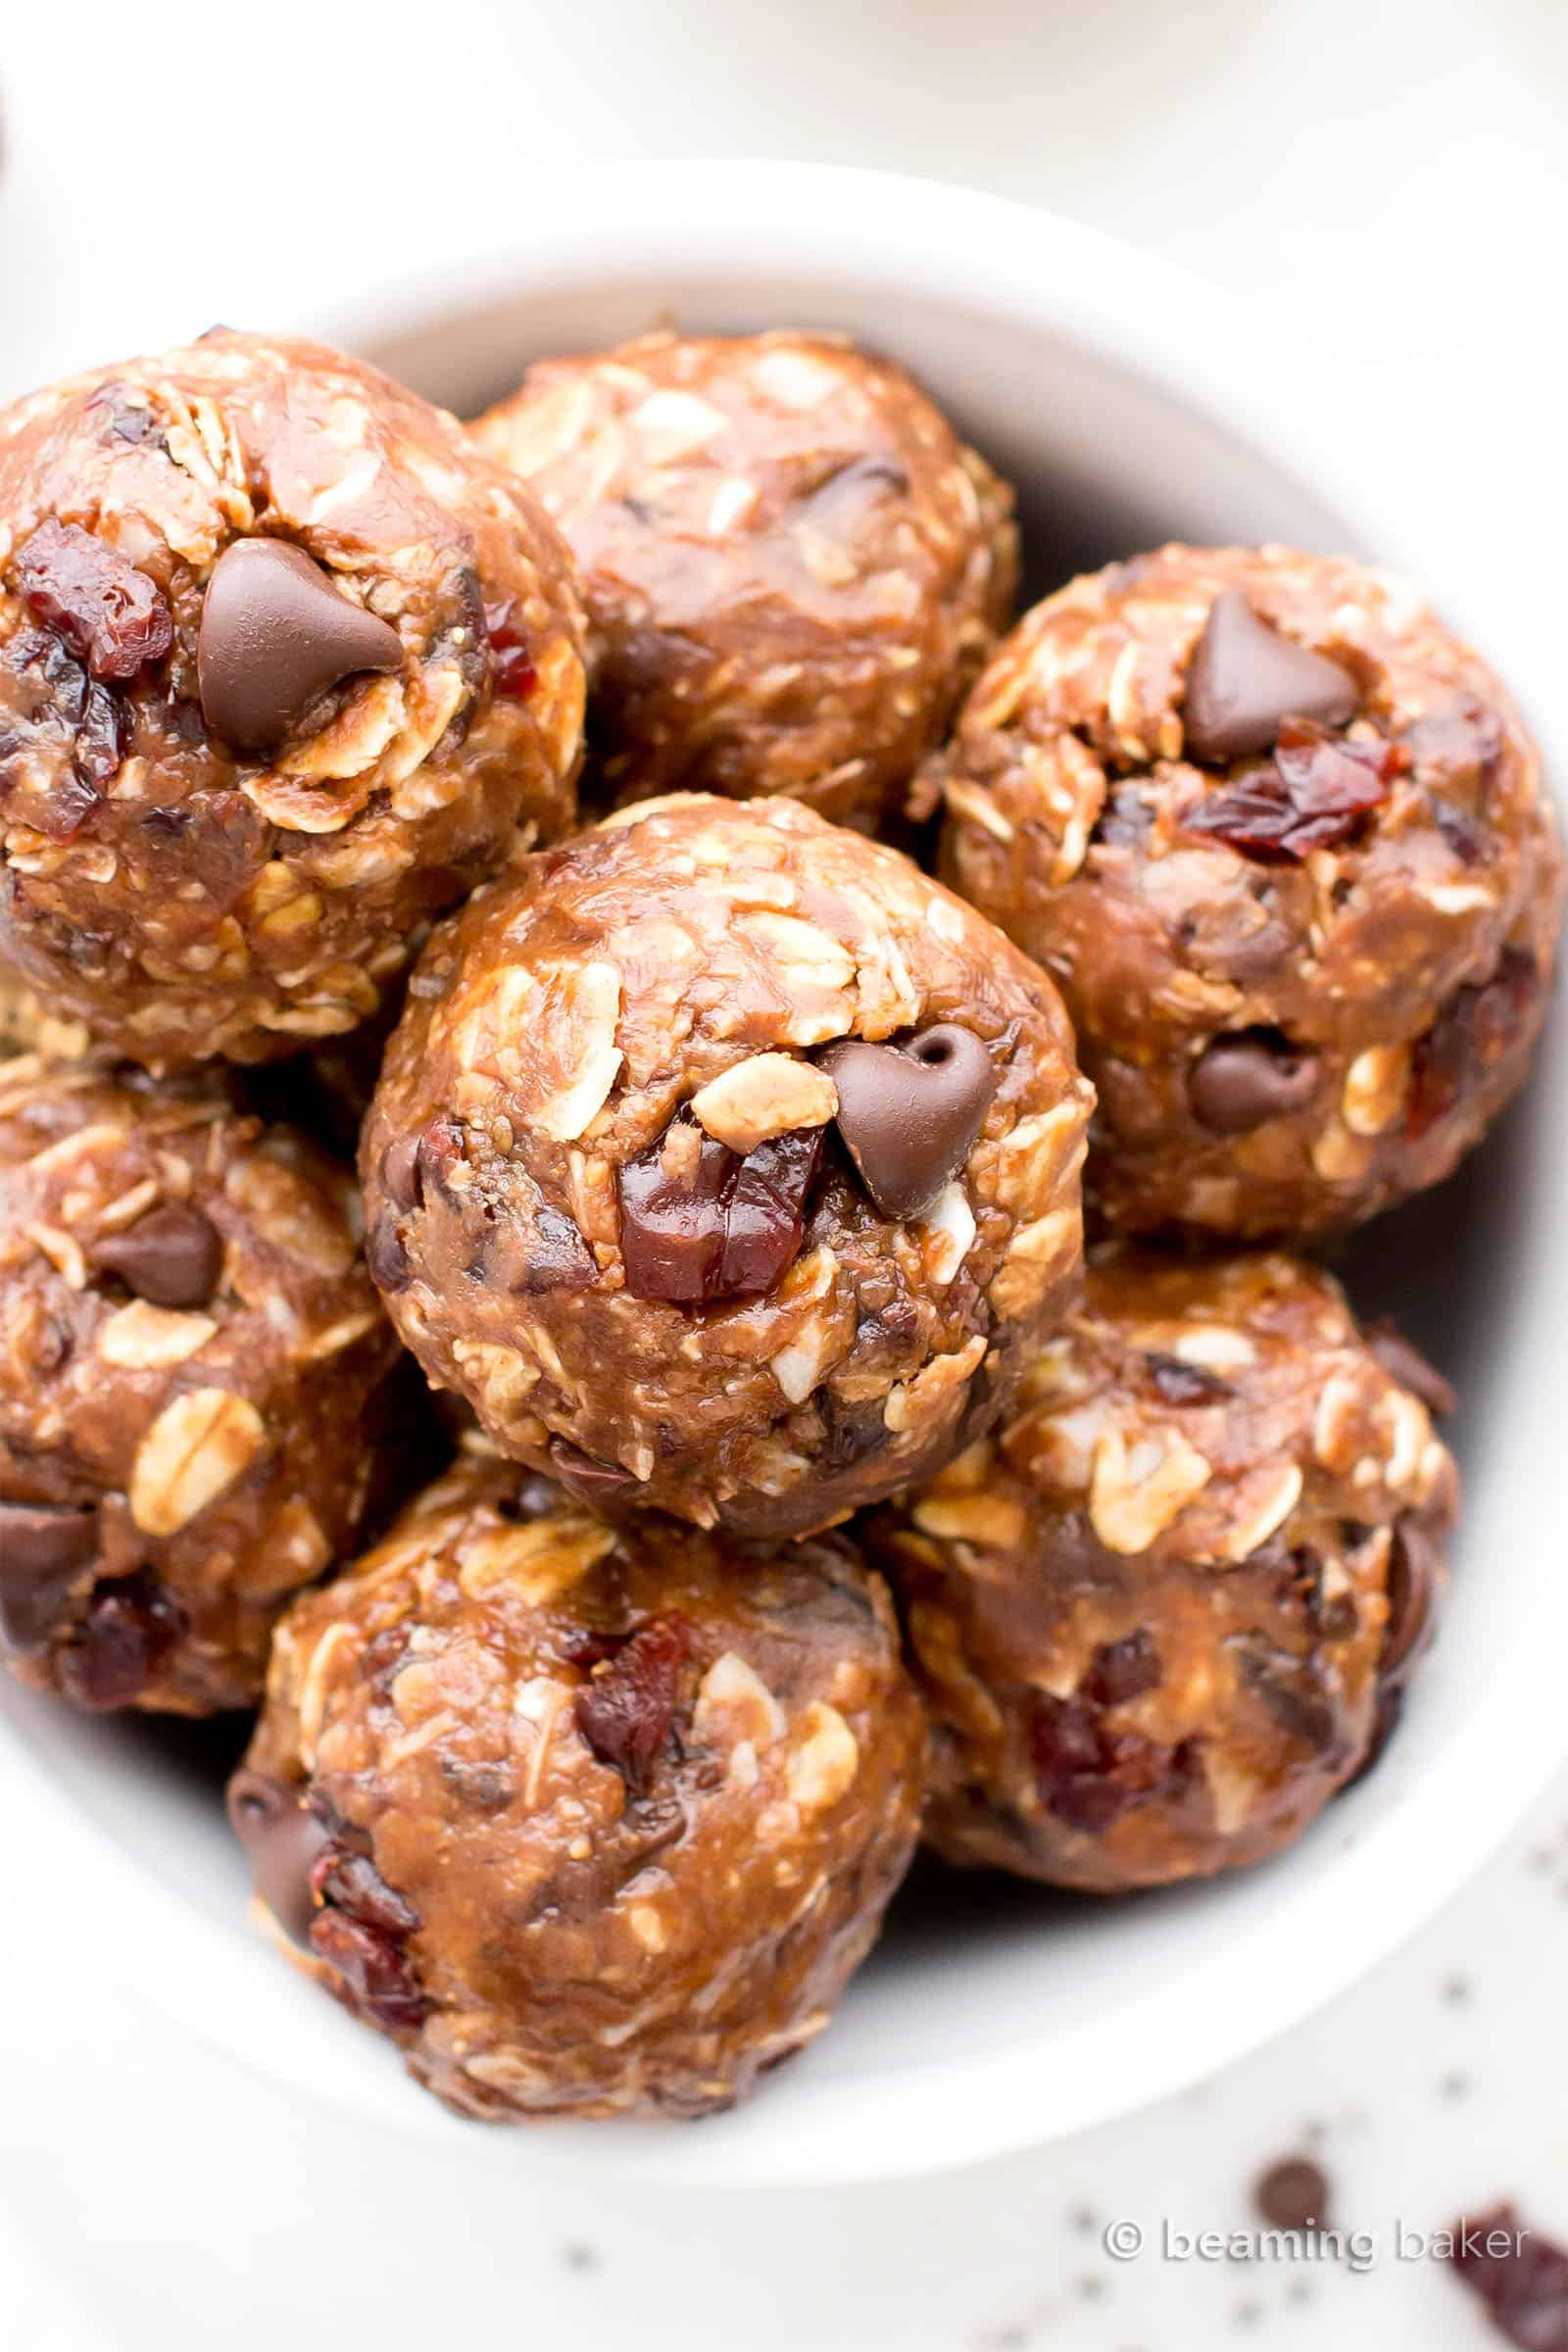 No Bake Energy Bites: a super easy no bake energy bites recipe made with simple, healthy ingredients and bursting with chocolate flavor! #NoBake #EnergyBites #Healthy #EnergyBalls | Recipe at BeamingBaker.com